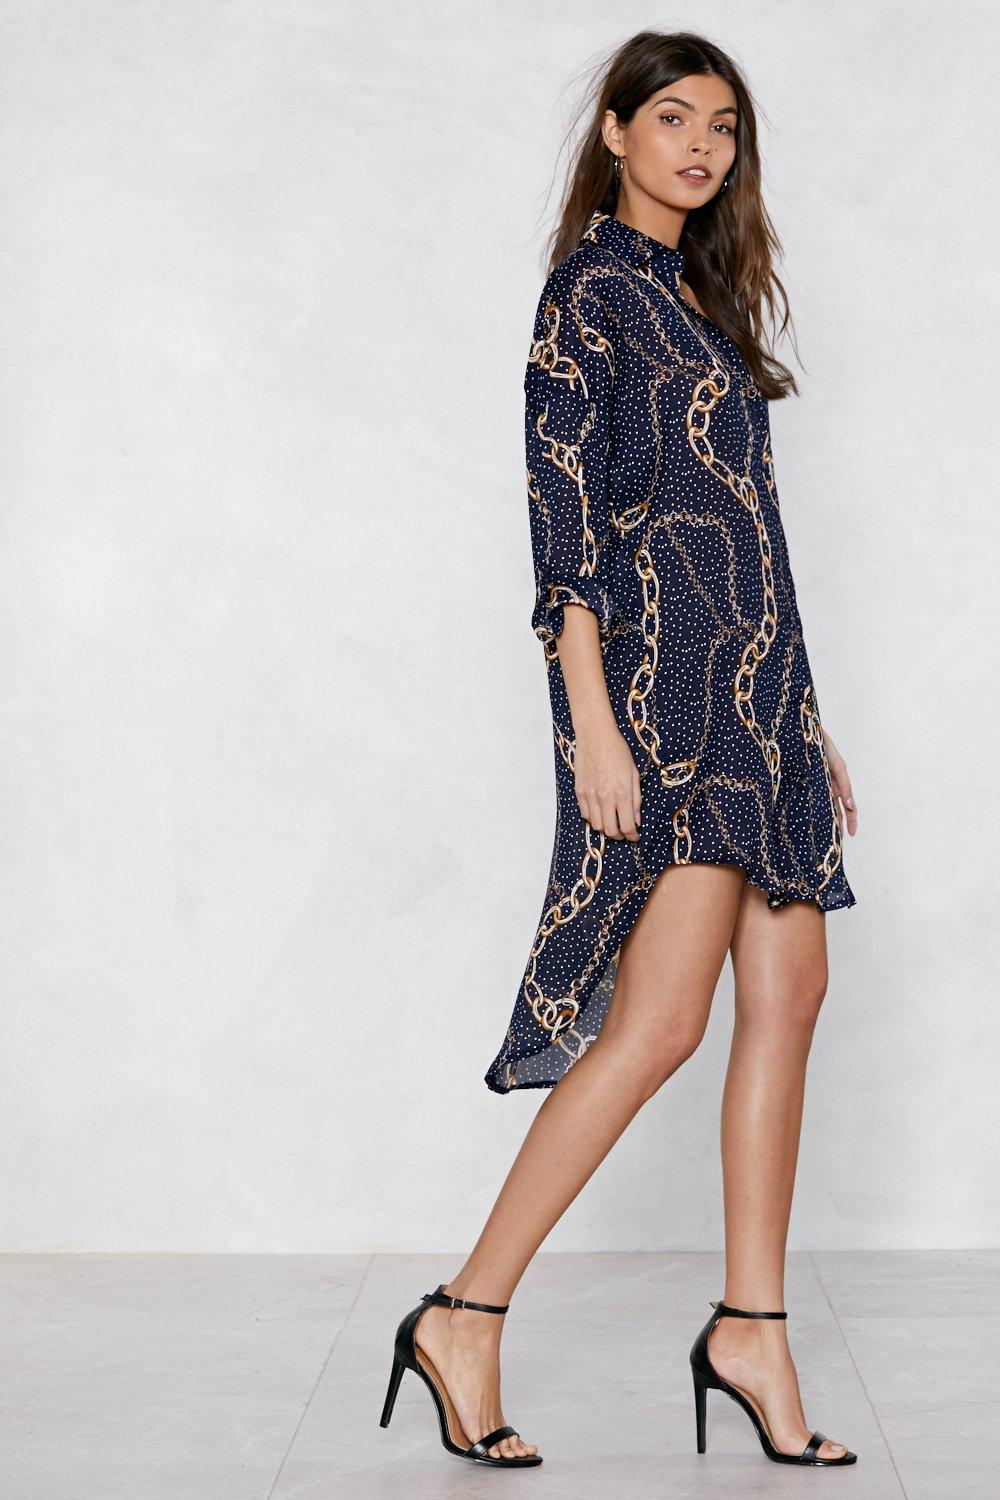 803d9328d50 Times Chain Shirt Dress. Hover to zoom